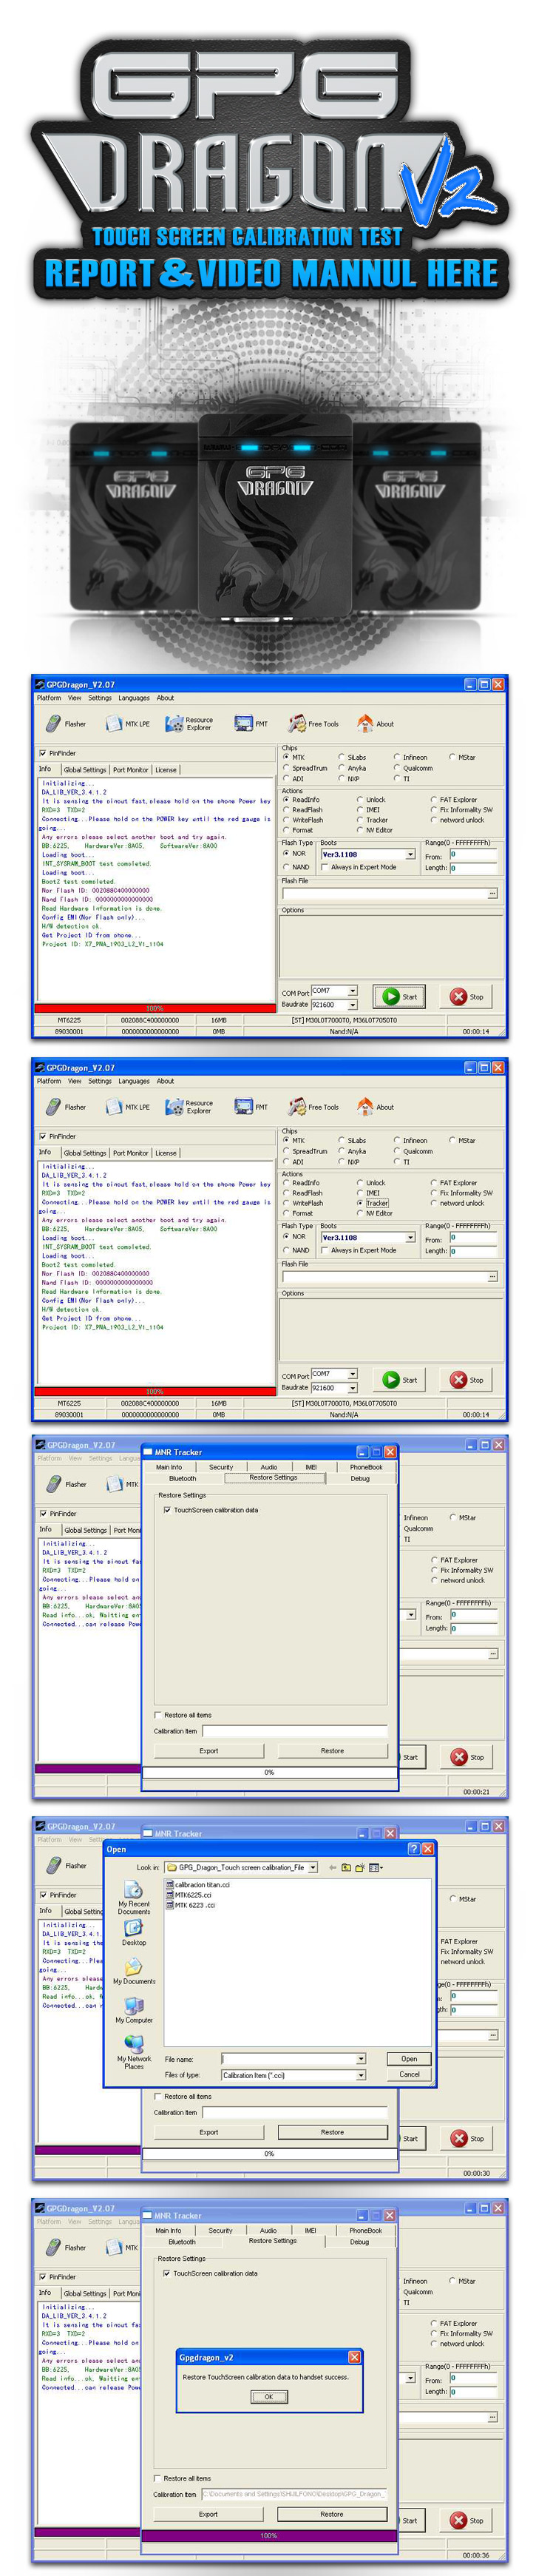 2011 07 12 GPG Dragon Touch screen calibration 725 01